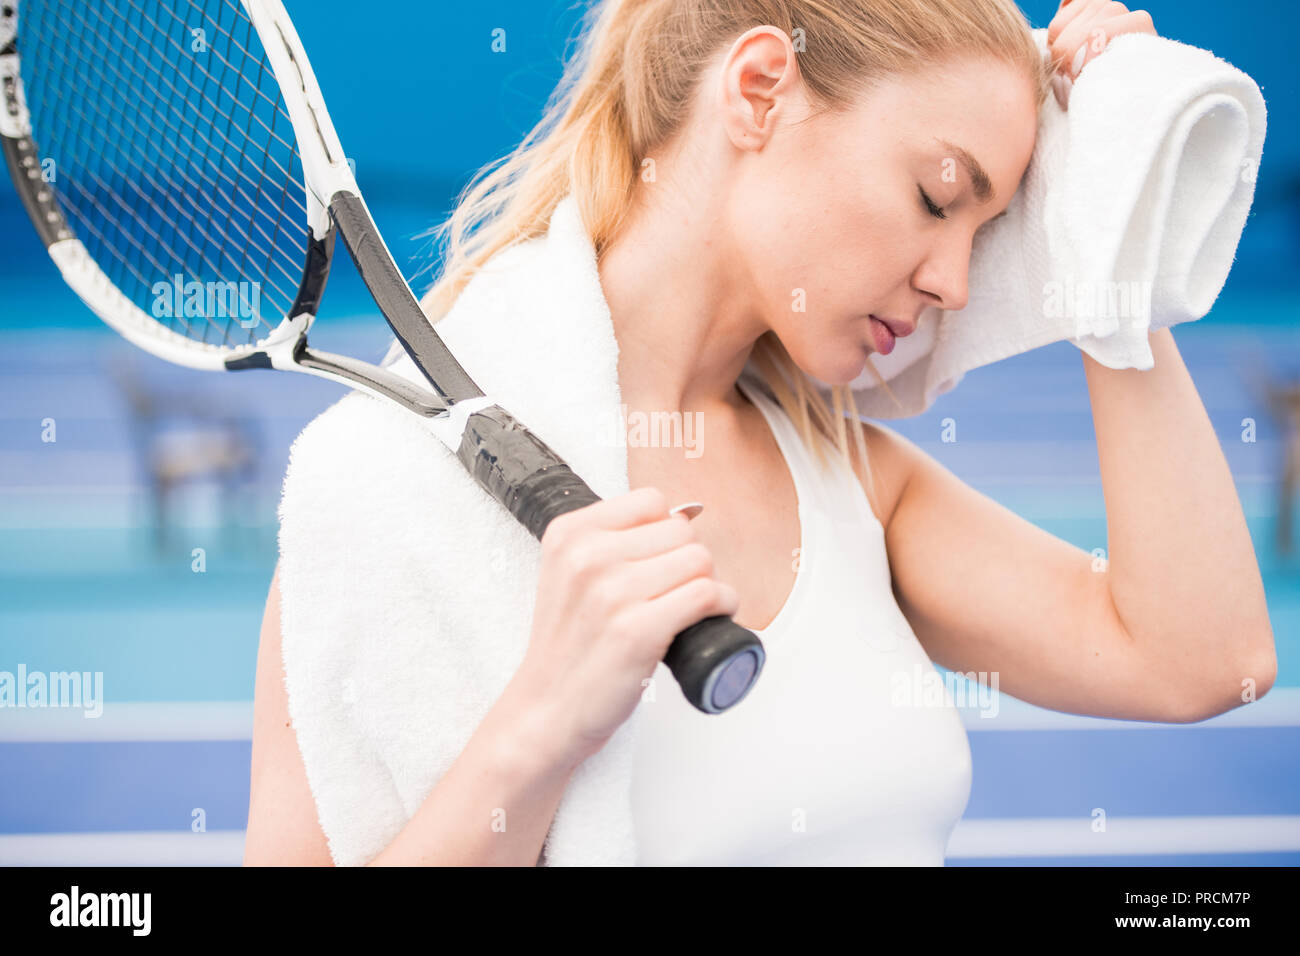 Exhausted Tennis Player - Stock Image